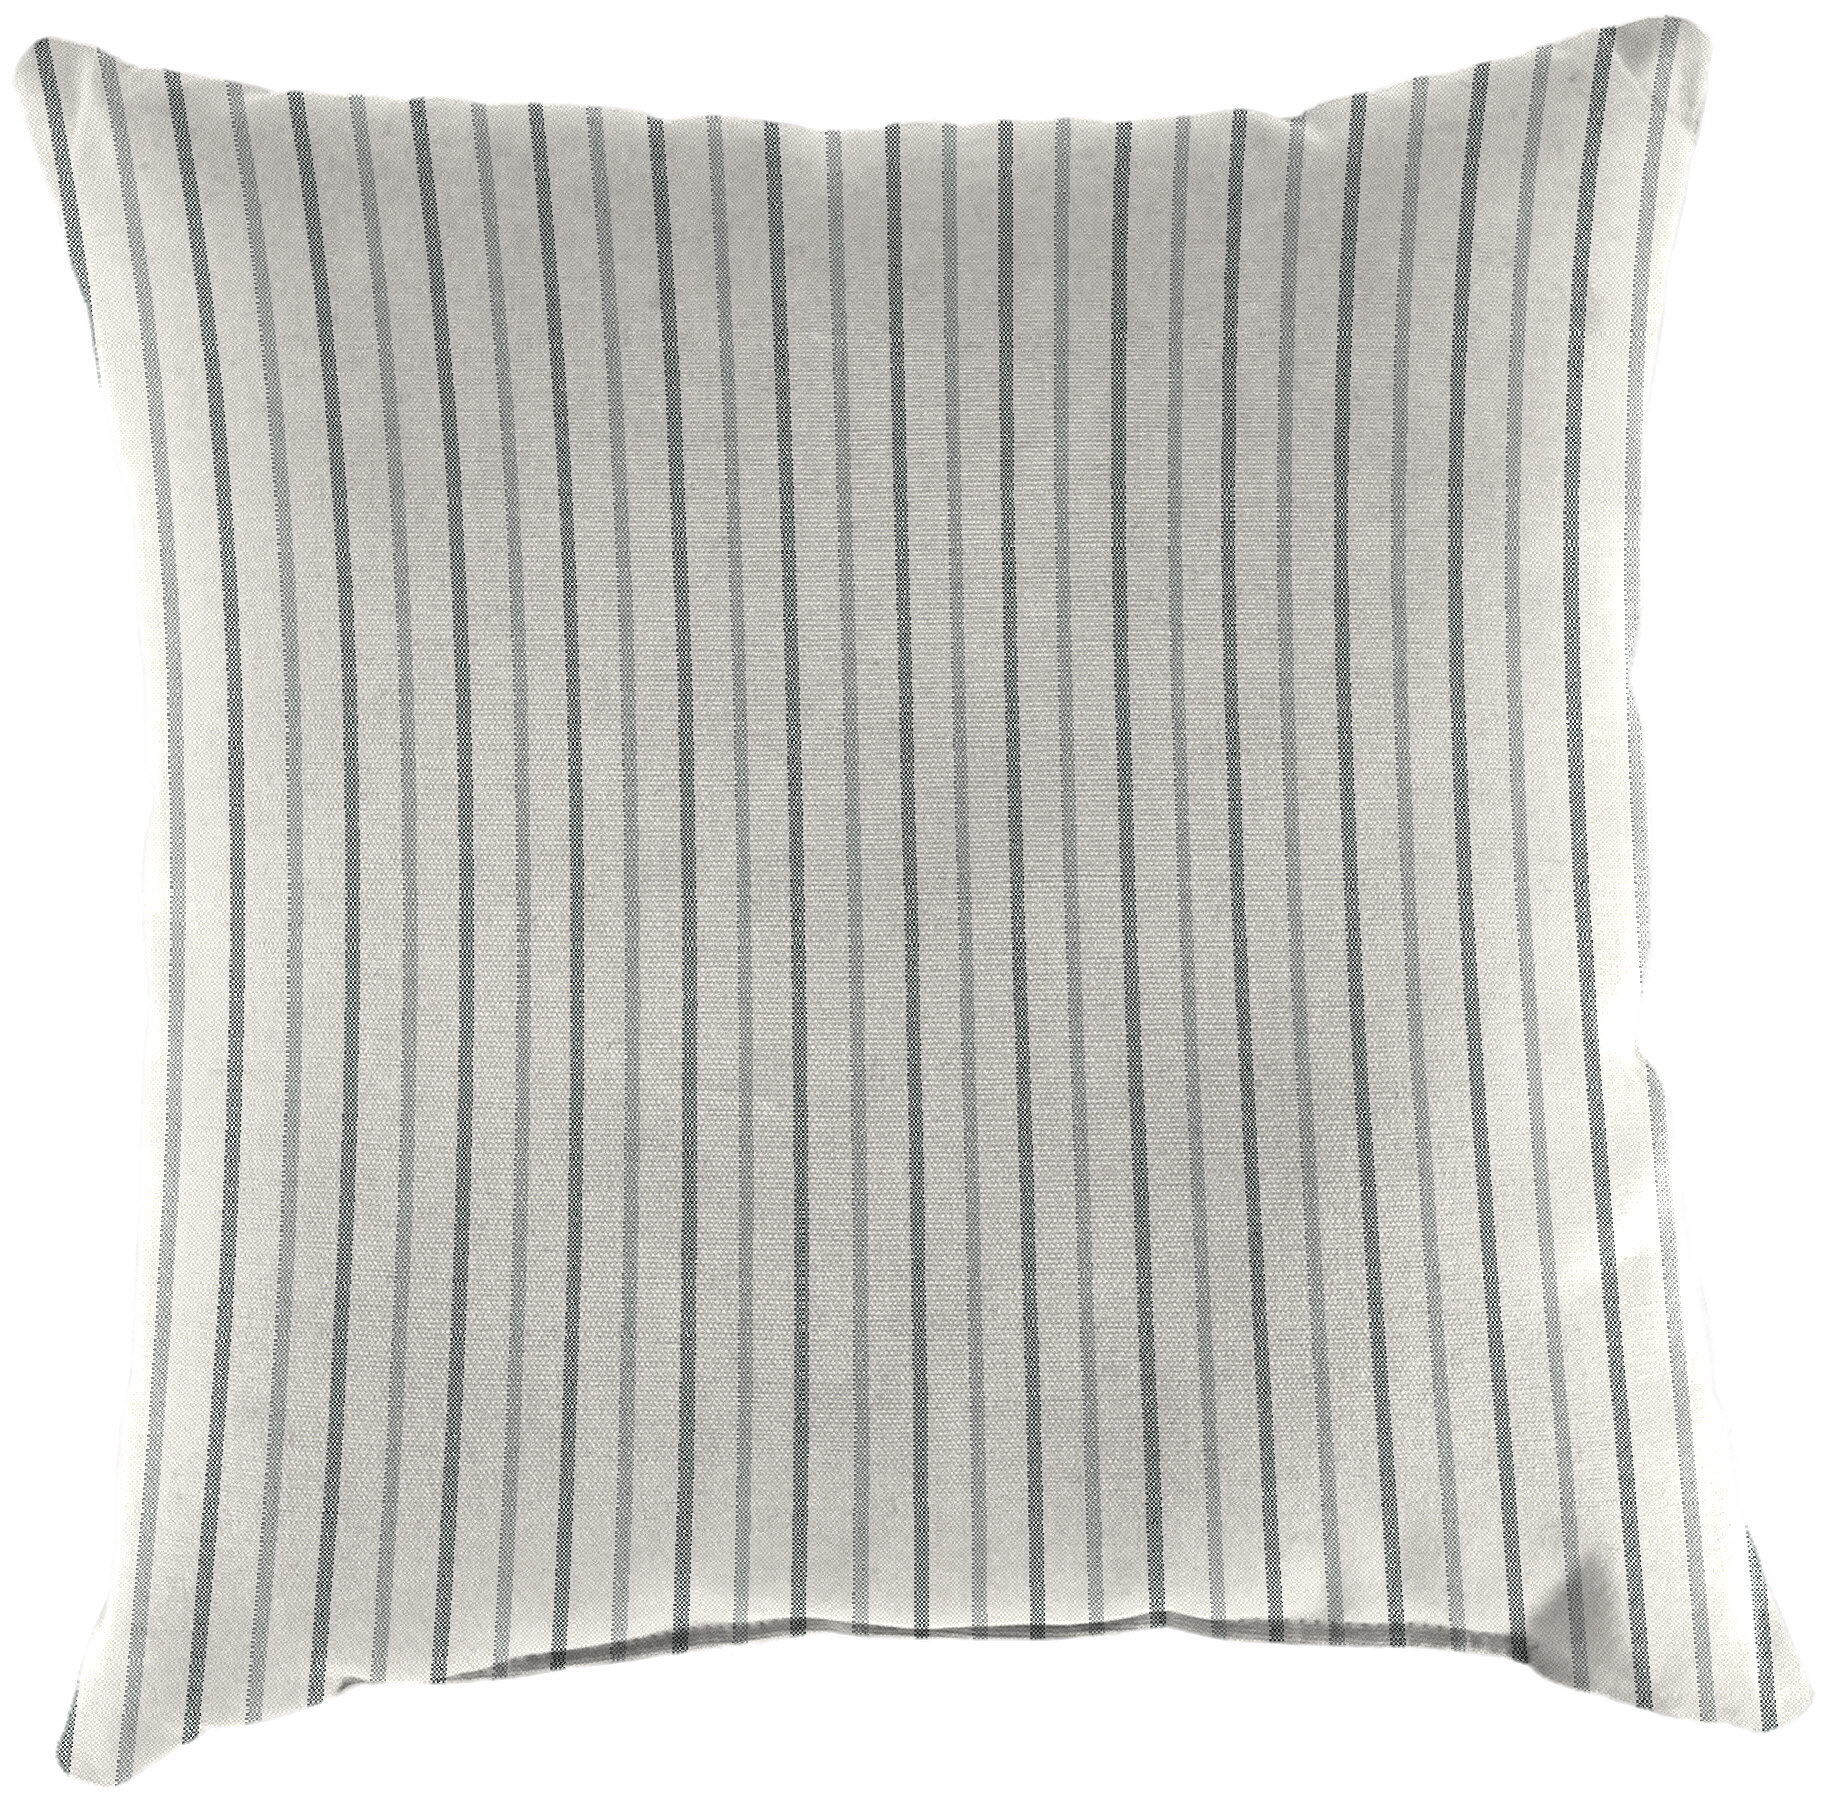 Gracie Oaks Basnight Indoor Outdoor Striped Throw Pillow Wayfair